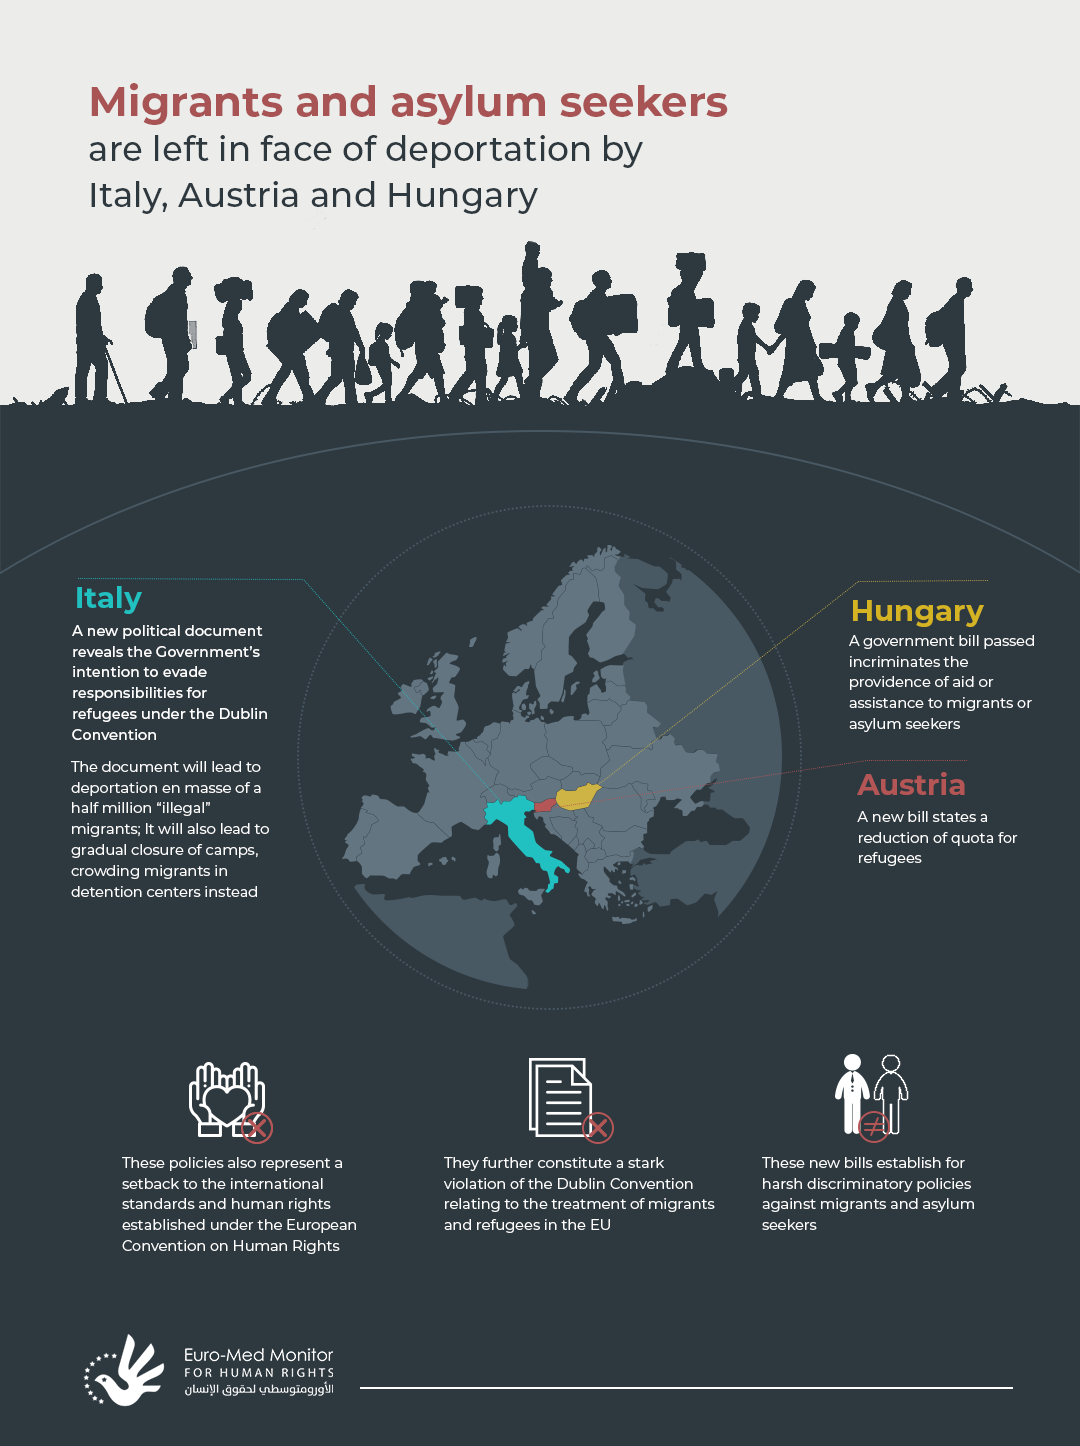 Migrants and asylum seekers  are left in face of deportation by Italy, Austria and Hungary